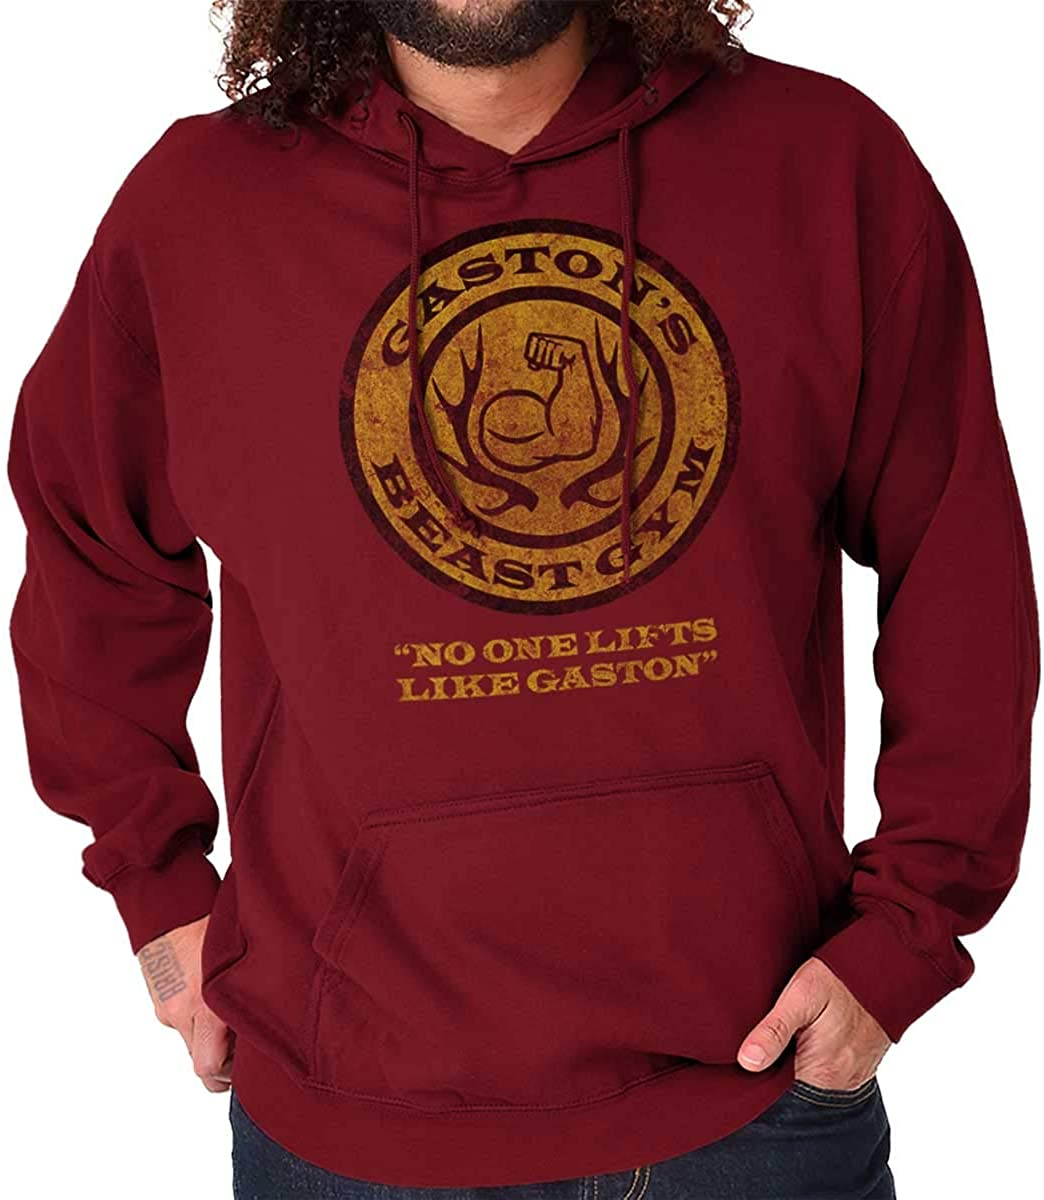 No One Lifts Like Gaston Beast Gym Hoodie for Men Or Women